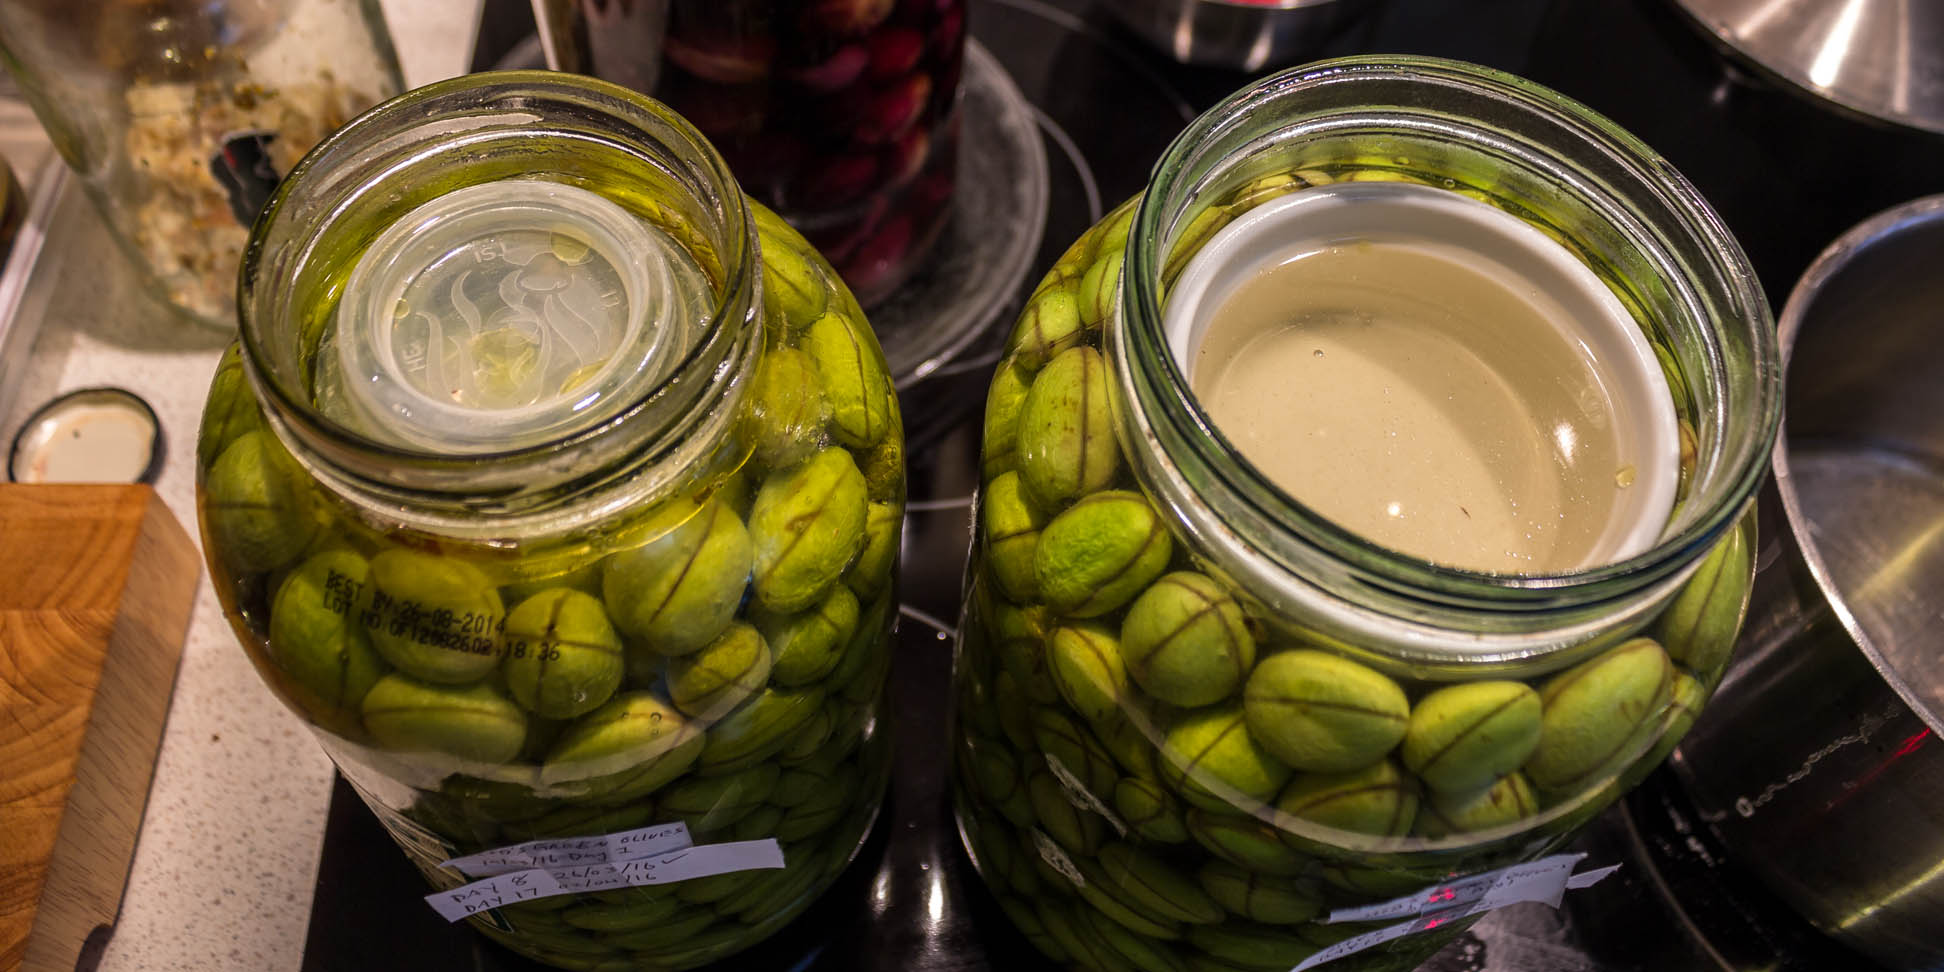 Olives in the jar with new brine solution.